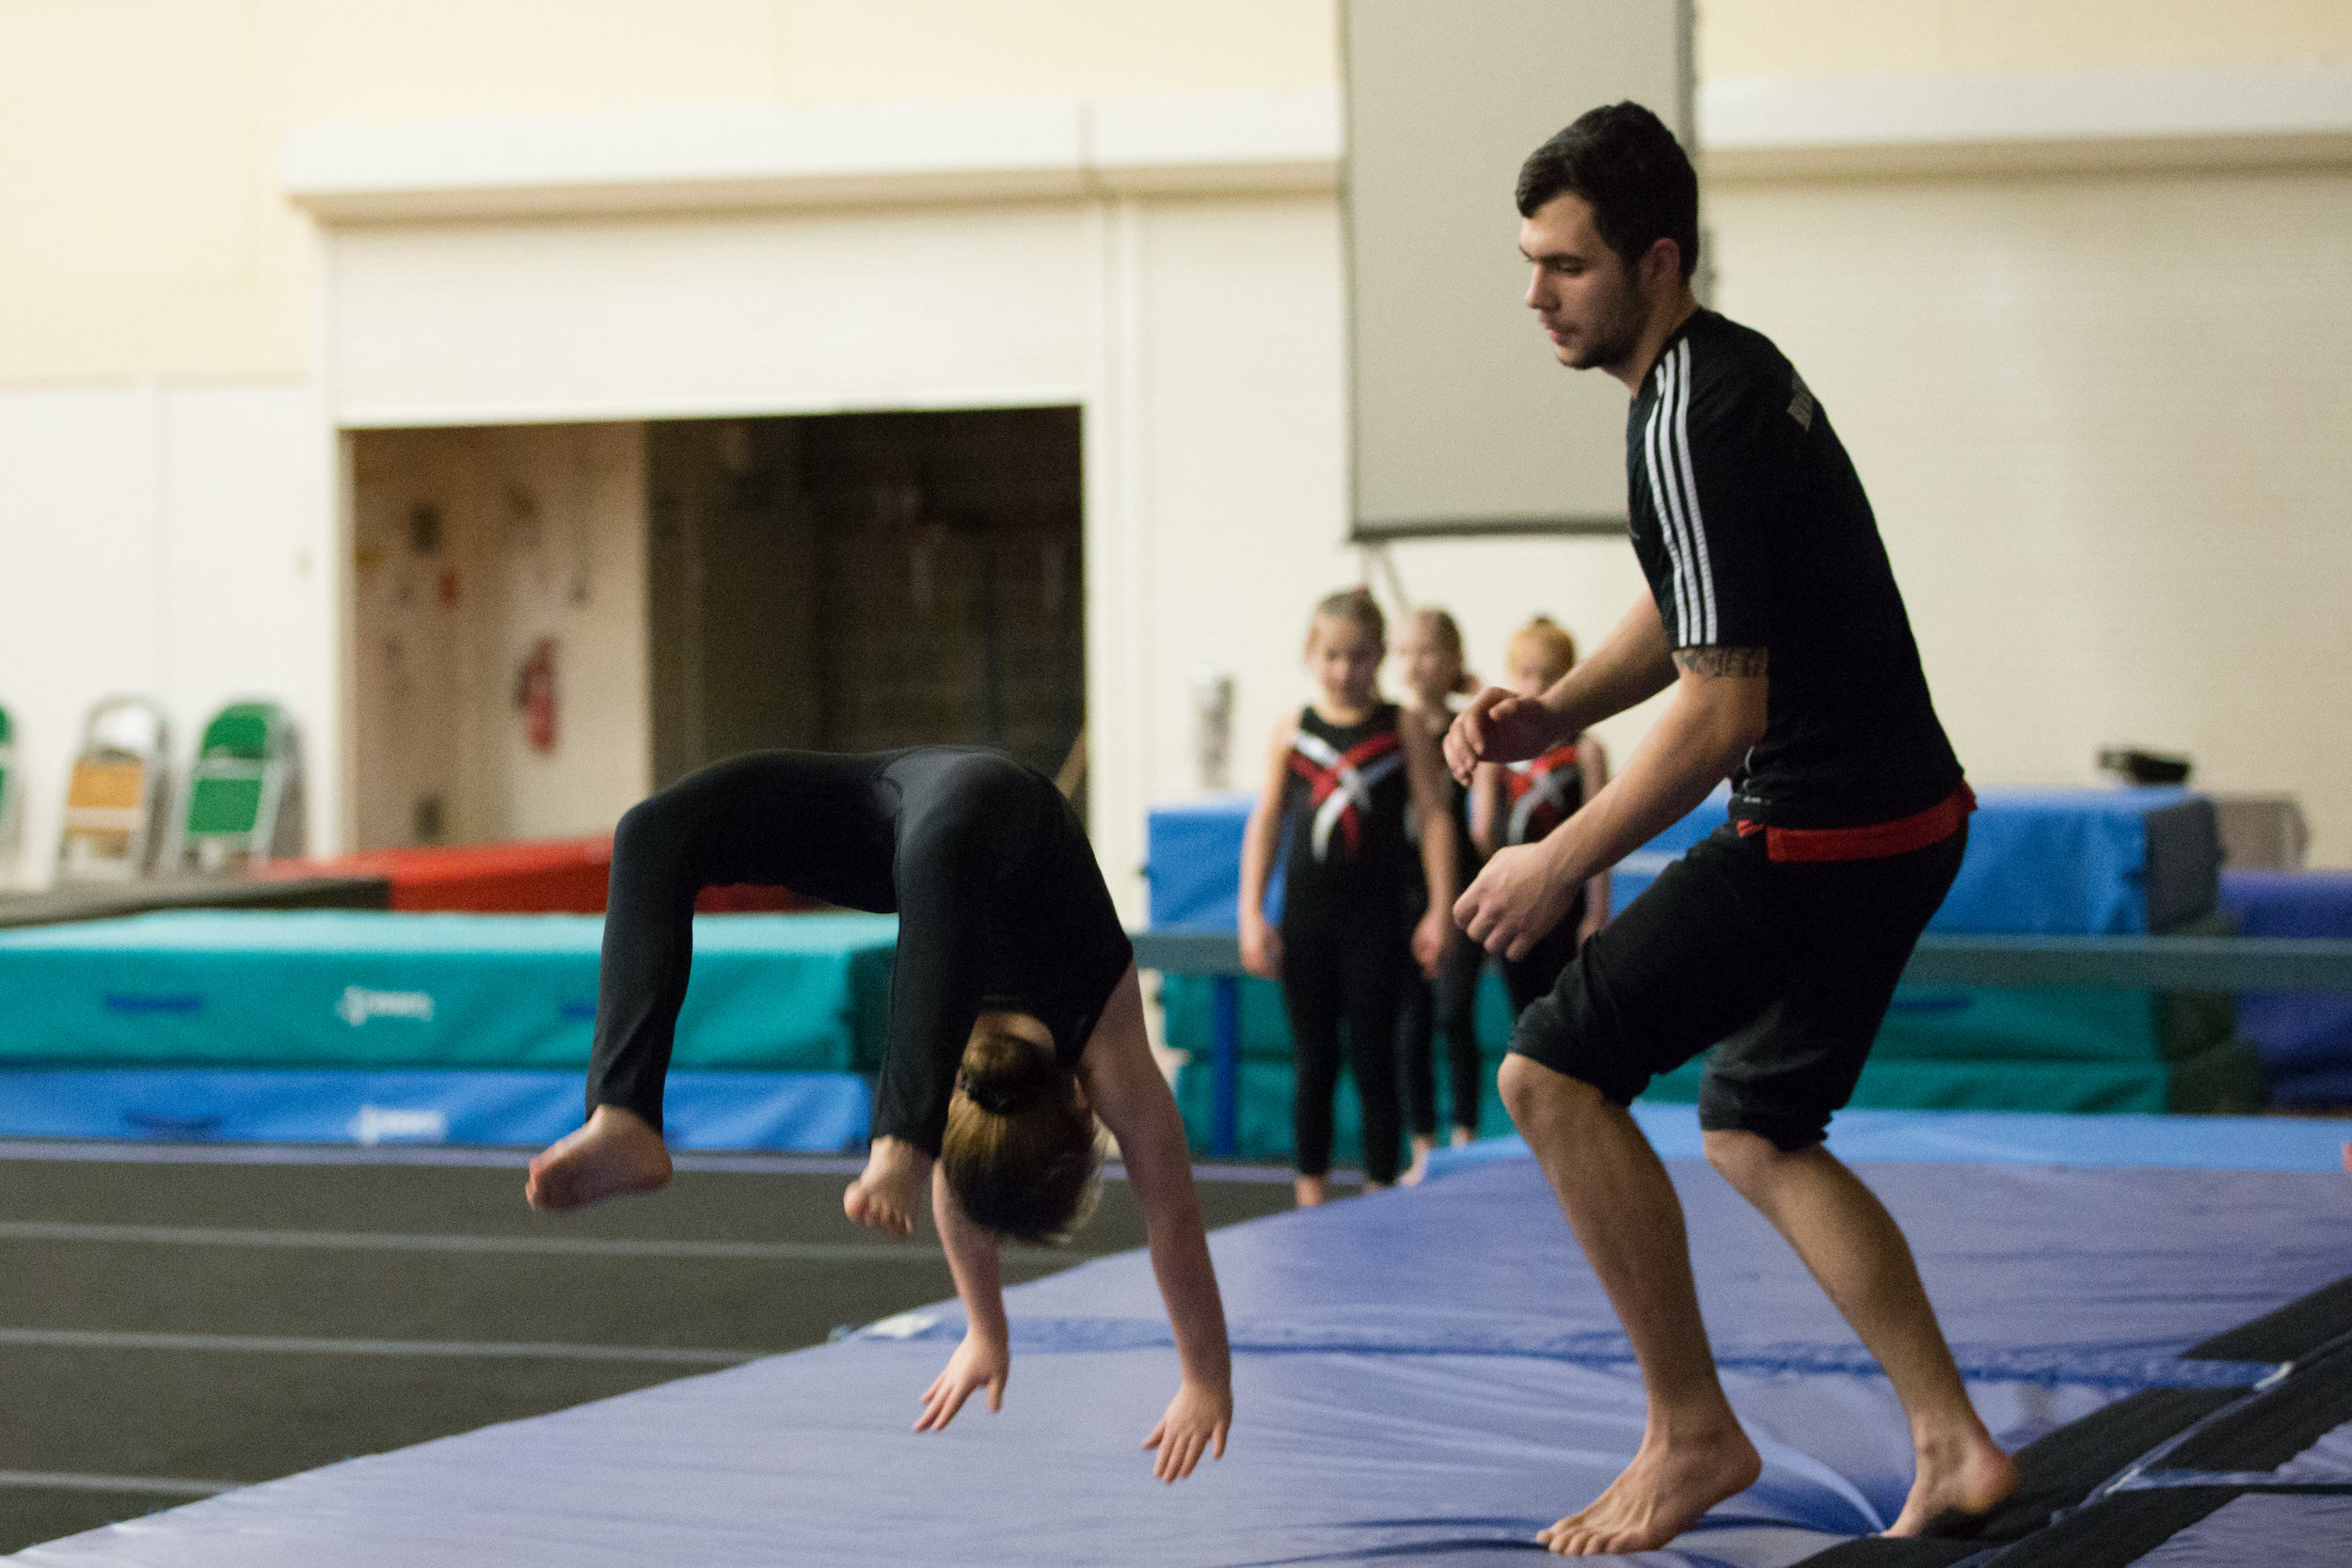 Advanced Gymnastics - Advanced Gymnastics classes are for those with substantial experience and ready to start exploring complex movements including somersaults & free rotational skills. The classes operate the Bracknell Gymnastics Club badge scheme covering badges 9 and upwards.